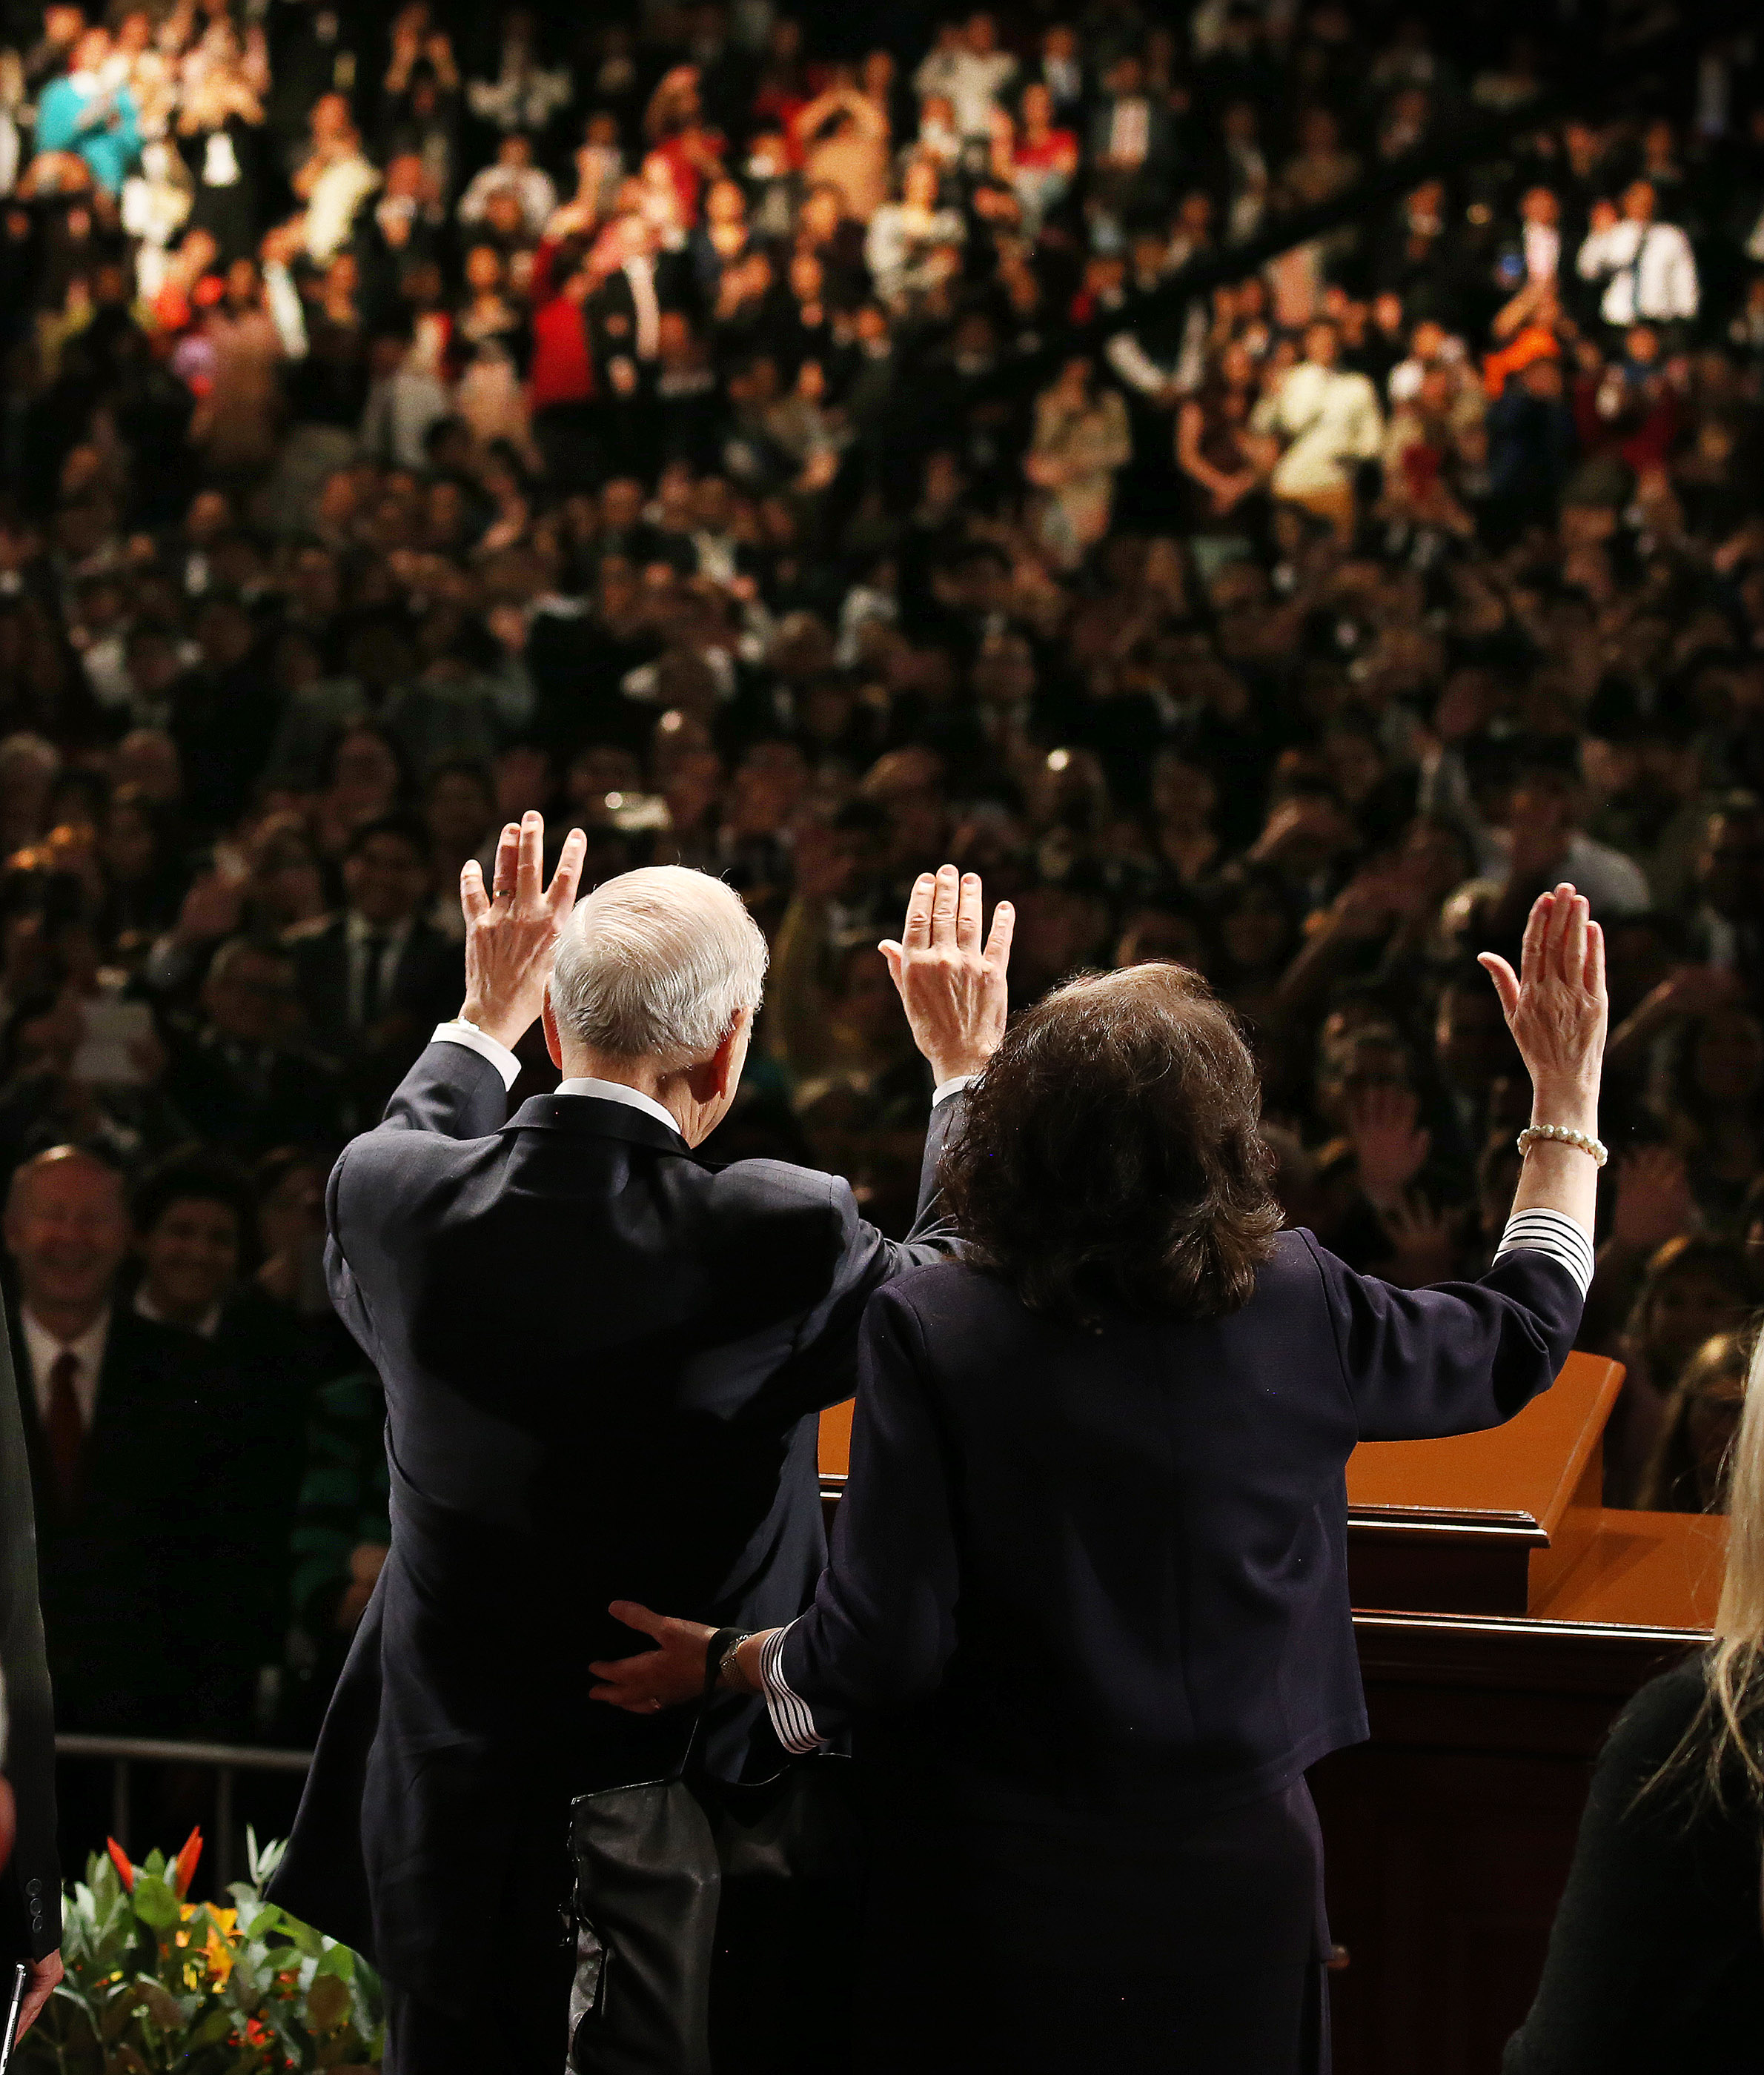 President Russell M. Nelson of The Church of Jesus Christ of Latter-day Saints and how wife Sister Wendy Nelson wave to attendees after a devotional in Lima, Peru on Oct. 20, 2018.